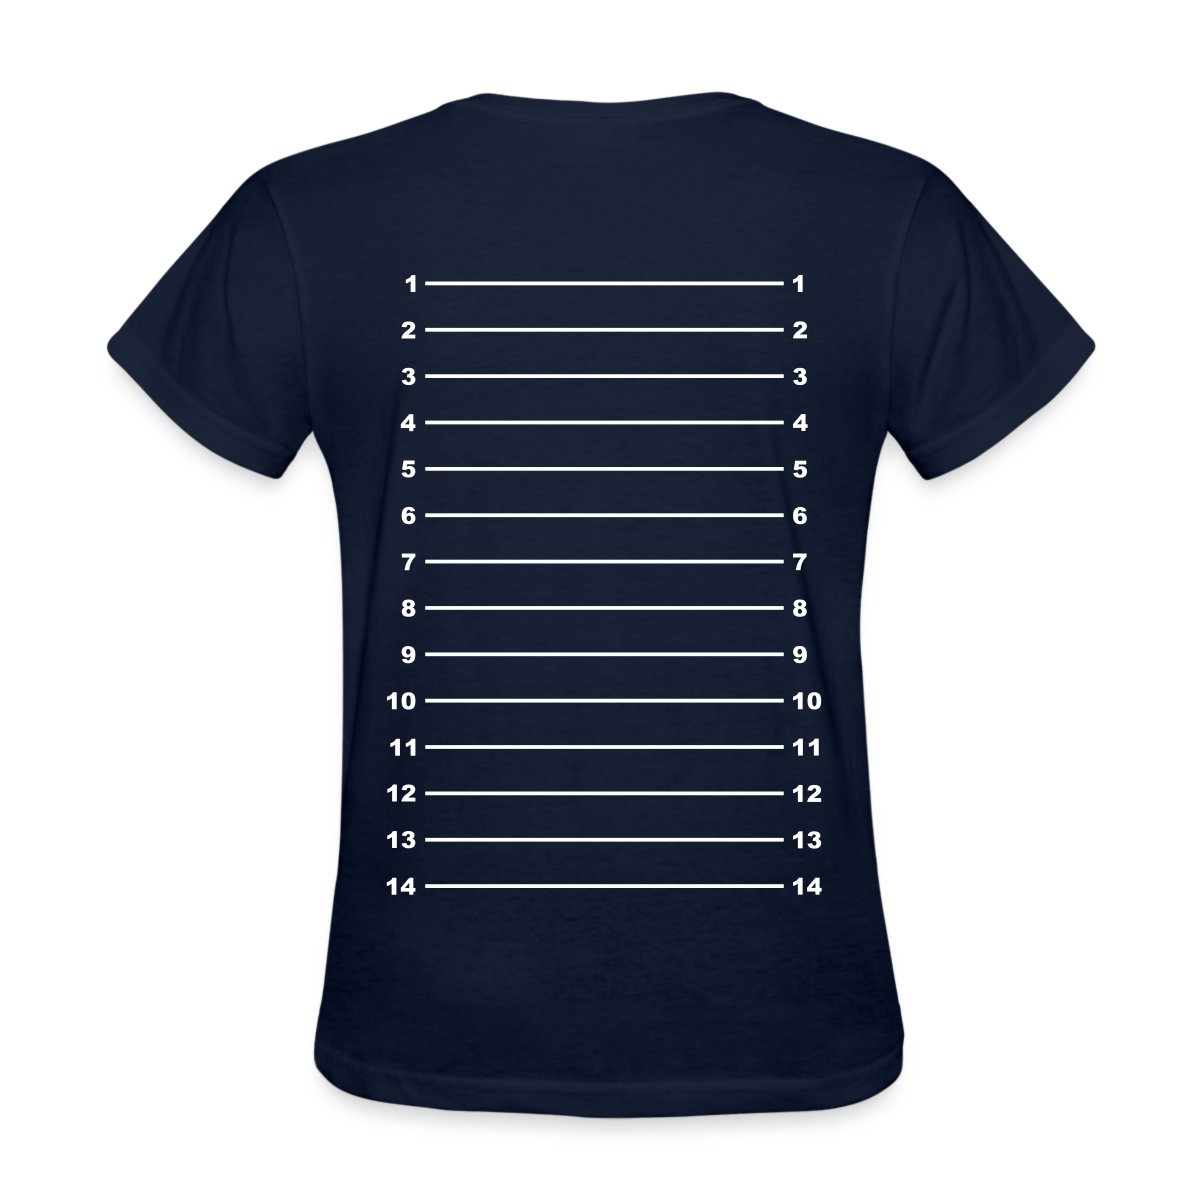 Hair Length Check Growth Chart Women's T-Shirt by ...